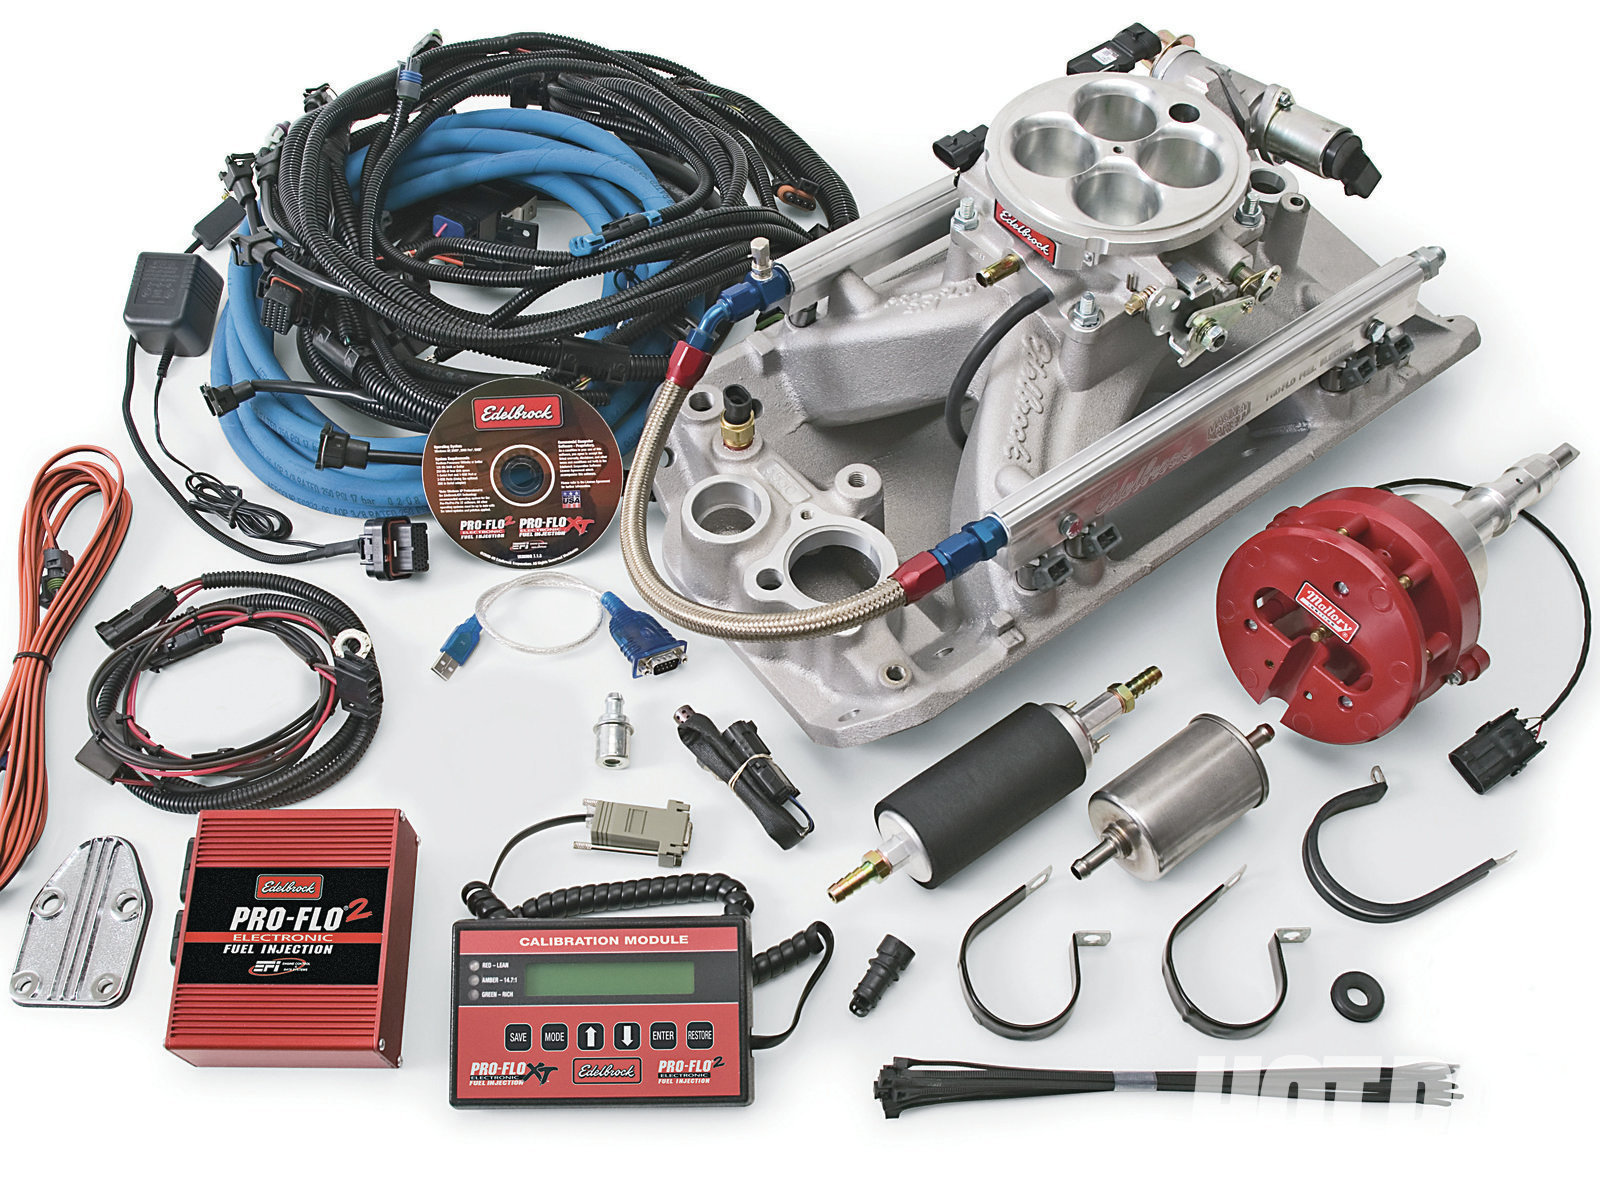 Edelbrock's Pro-Flo 2 AMC EFI system features fully sequential firing and is tunable via a laptop PC or by its unique handheld calibration module. Systems include everything needed for the conversion, including an intake and distributor. PN 35300 is for '69-and-earlier; PN 35310 fits '70–'91. They support up to 450 hp with their included 29-lb/hr injectors.